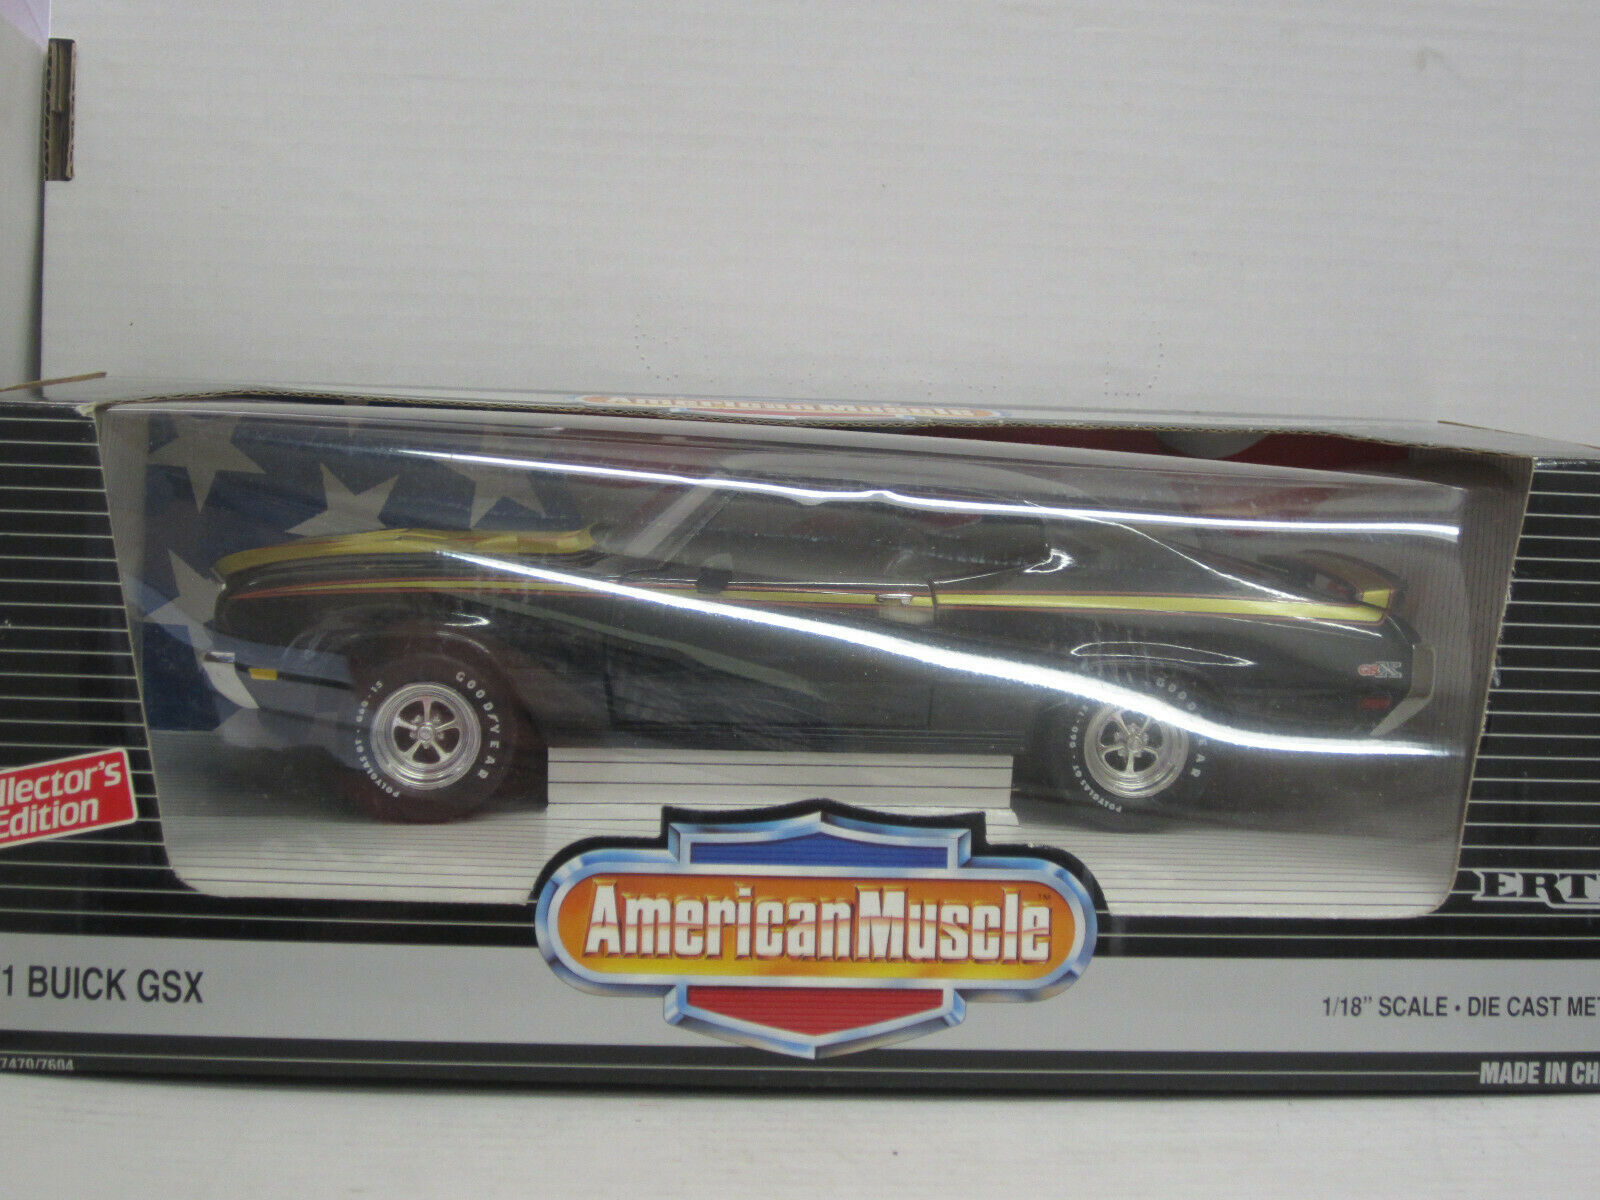 Buick GSX Coupe 1971, nero oro, ertl American muscle, OVP, 1 18